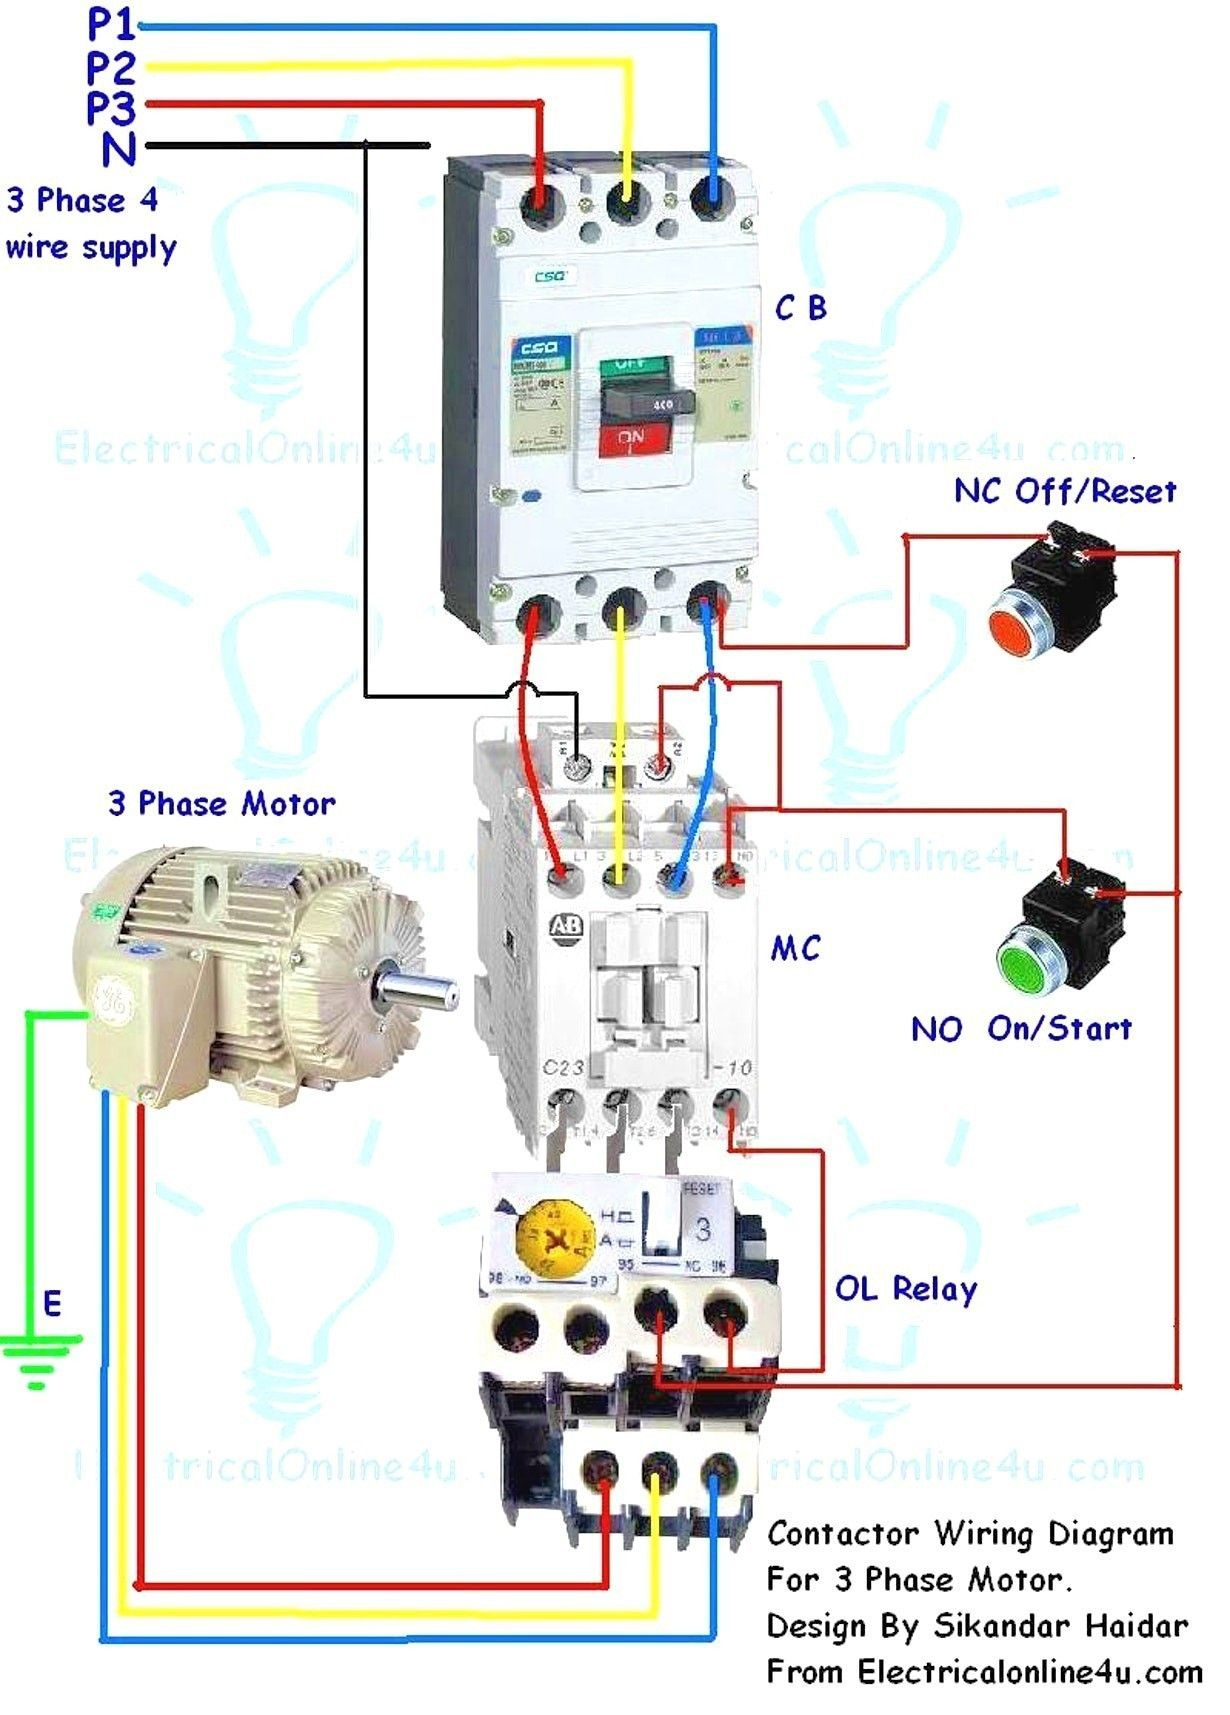 1 Phase Contactor Wiring Diagram 2014 F150 Wiring Diagram Jaguars Ajingemut Decorresine It